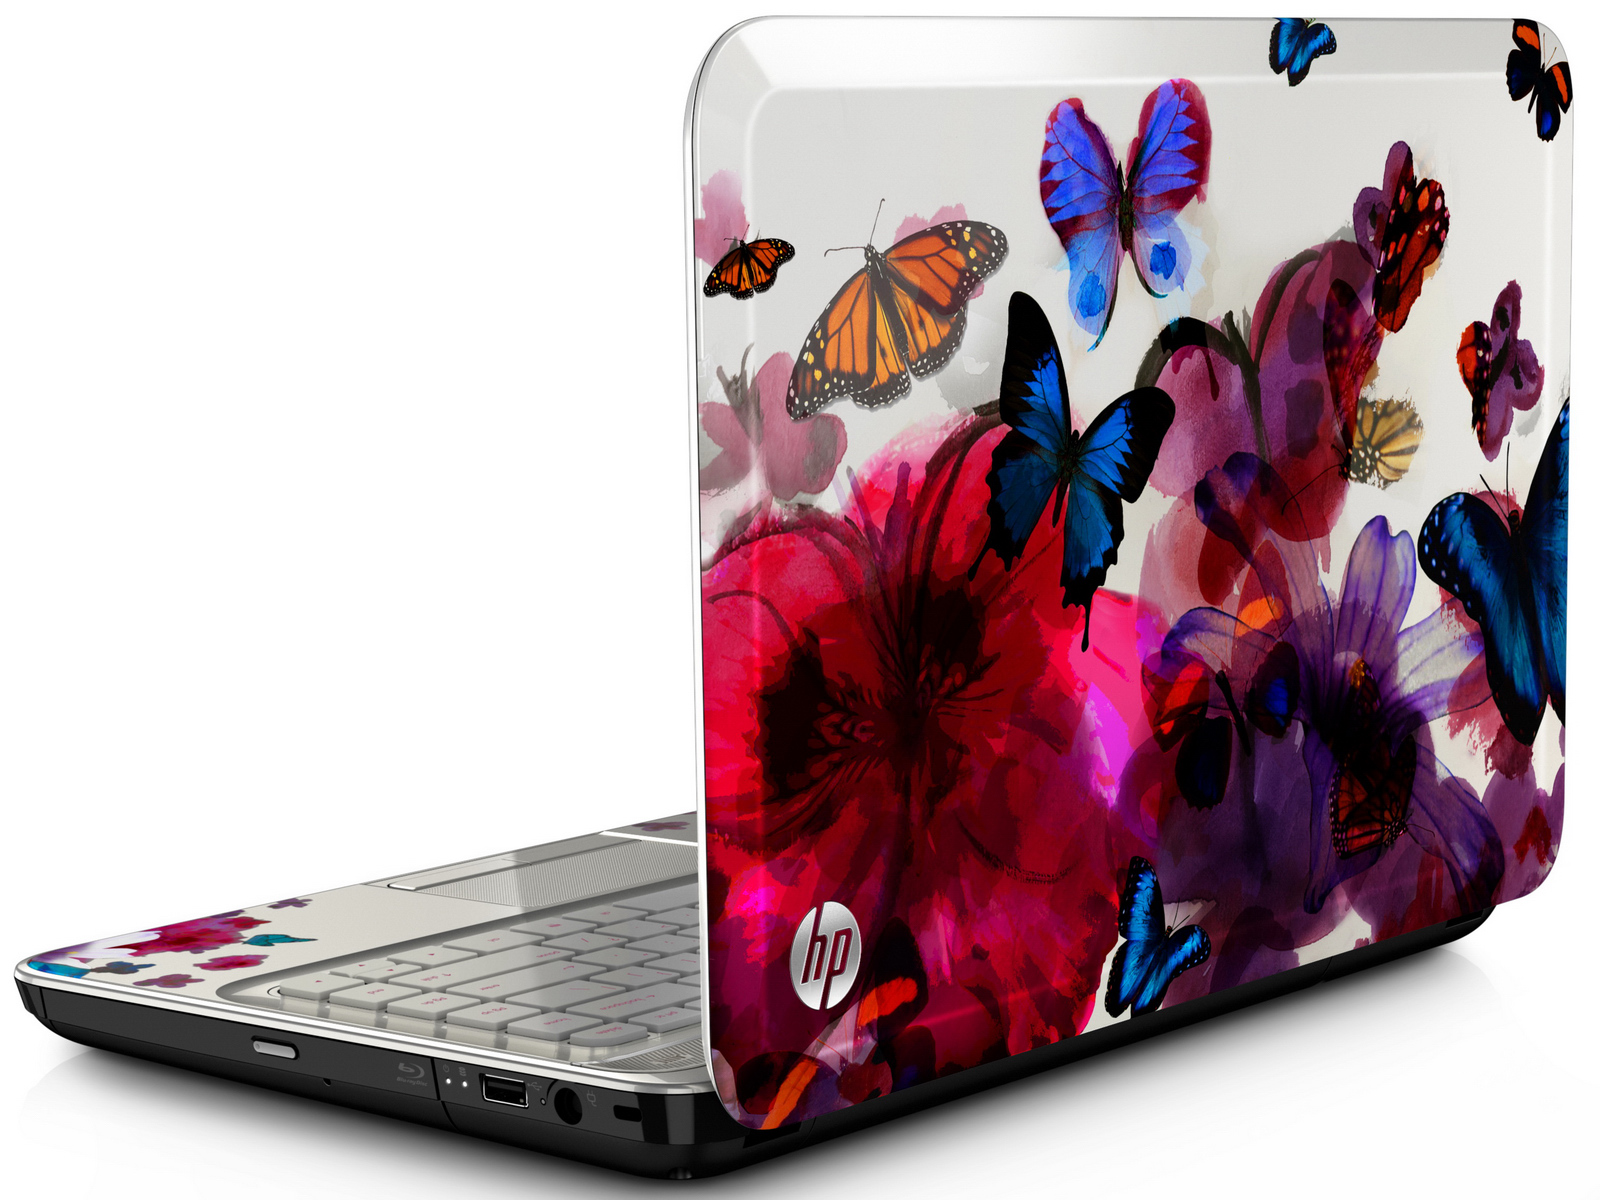 hp 14 notebook hp pavilion g4 butterfly blossom special edition news. Black Bedroom Furniture Sets. Home Design Ideas